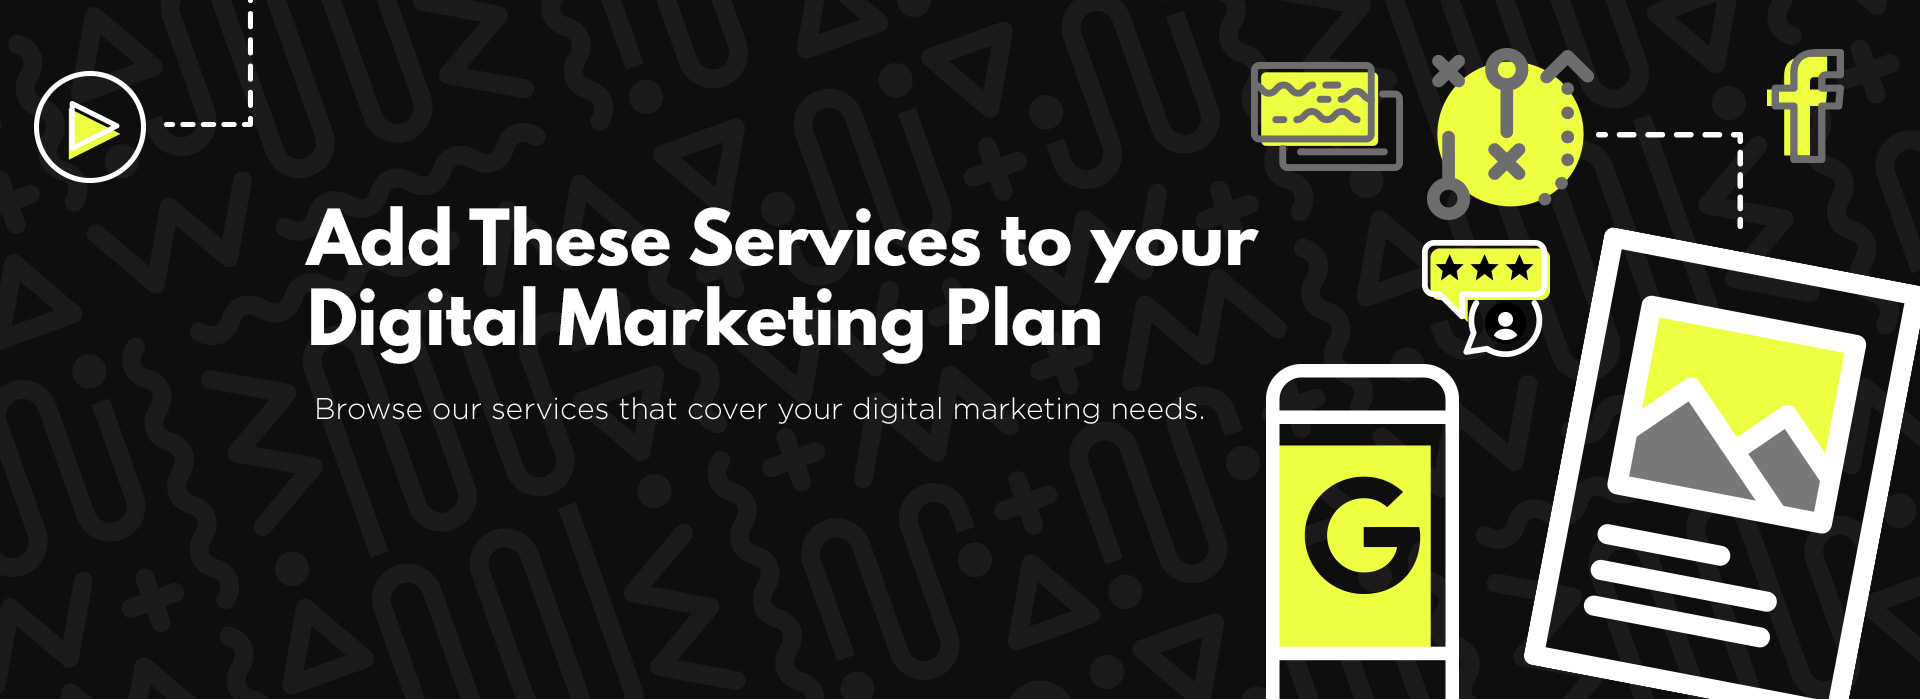 Add These Services to your Digital Marketing Plan